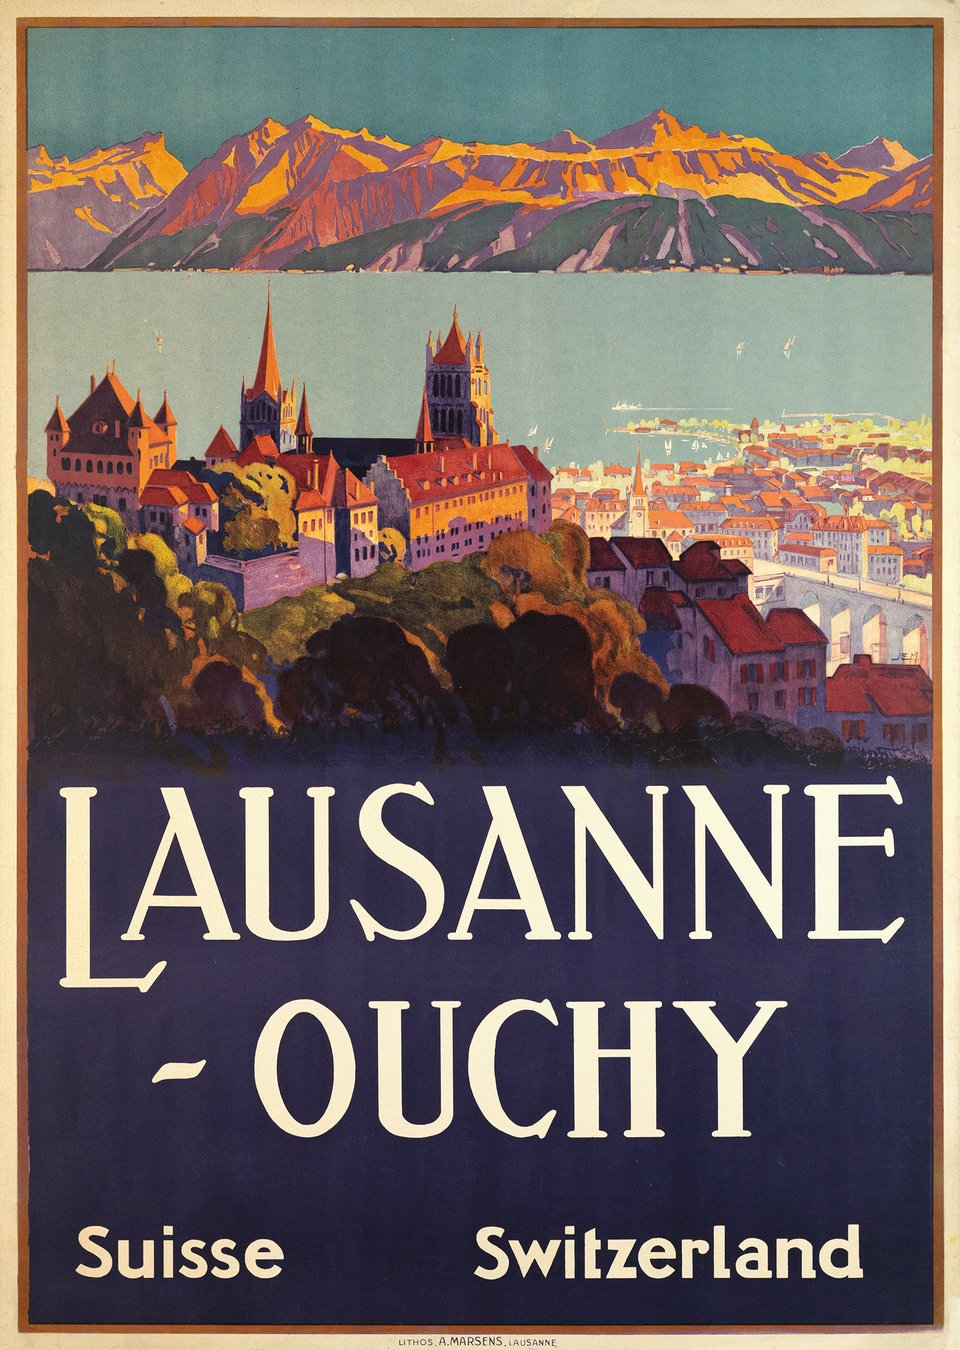 Lausanne-Ouchy – Vintage poster – Johannes Emil MÜLLER – 1929